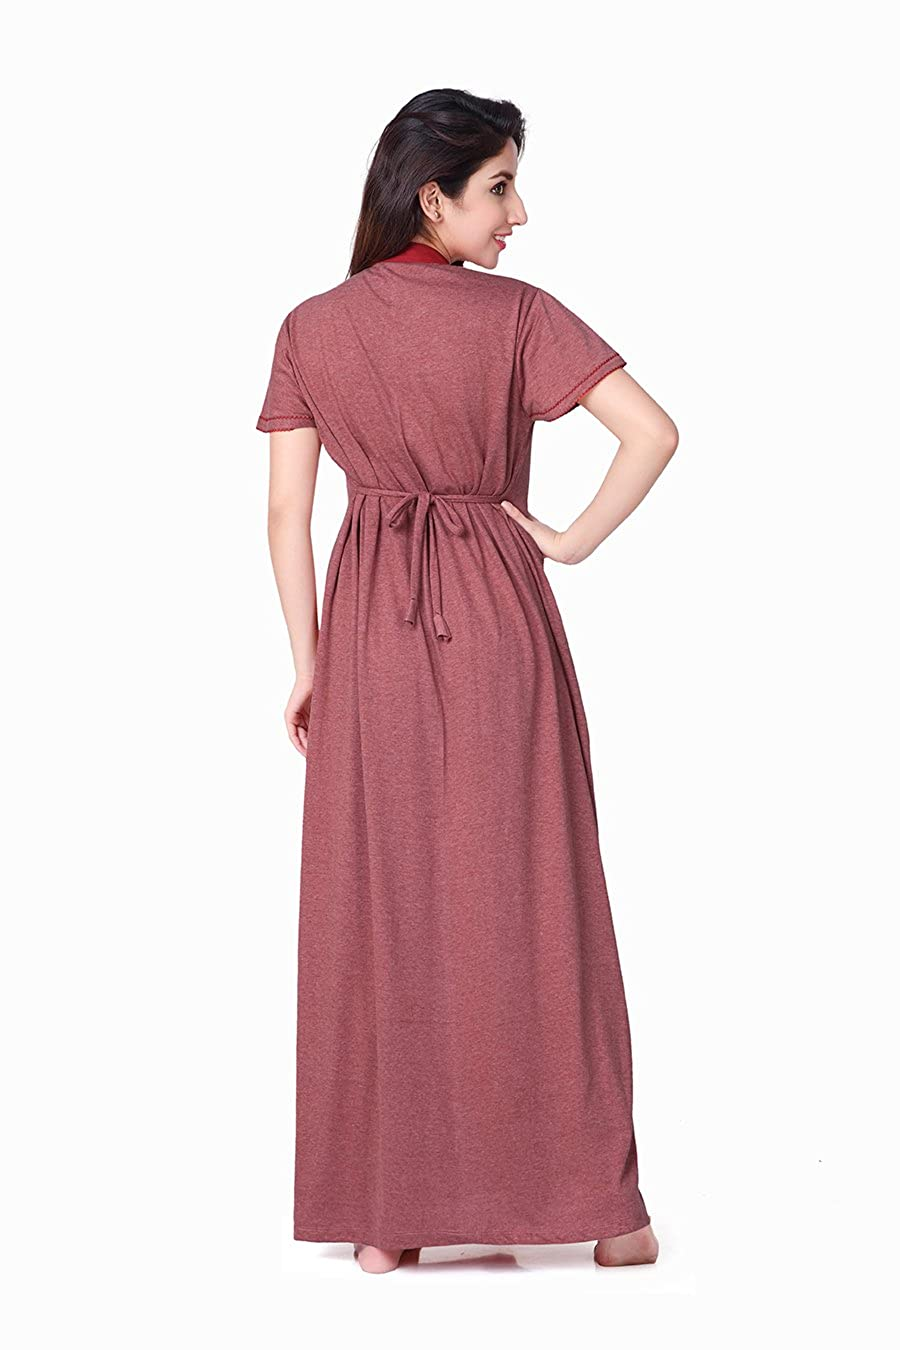 9884820249 HoneyDew CORAL WOMENS NIGHTY FREE SIZE POPPY GJ  Amazon.in  Clothing    Accessories